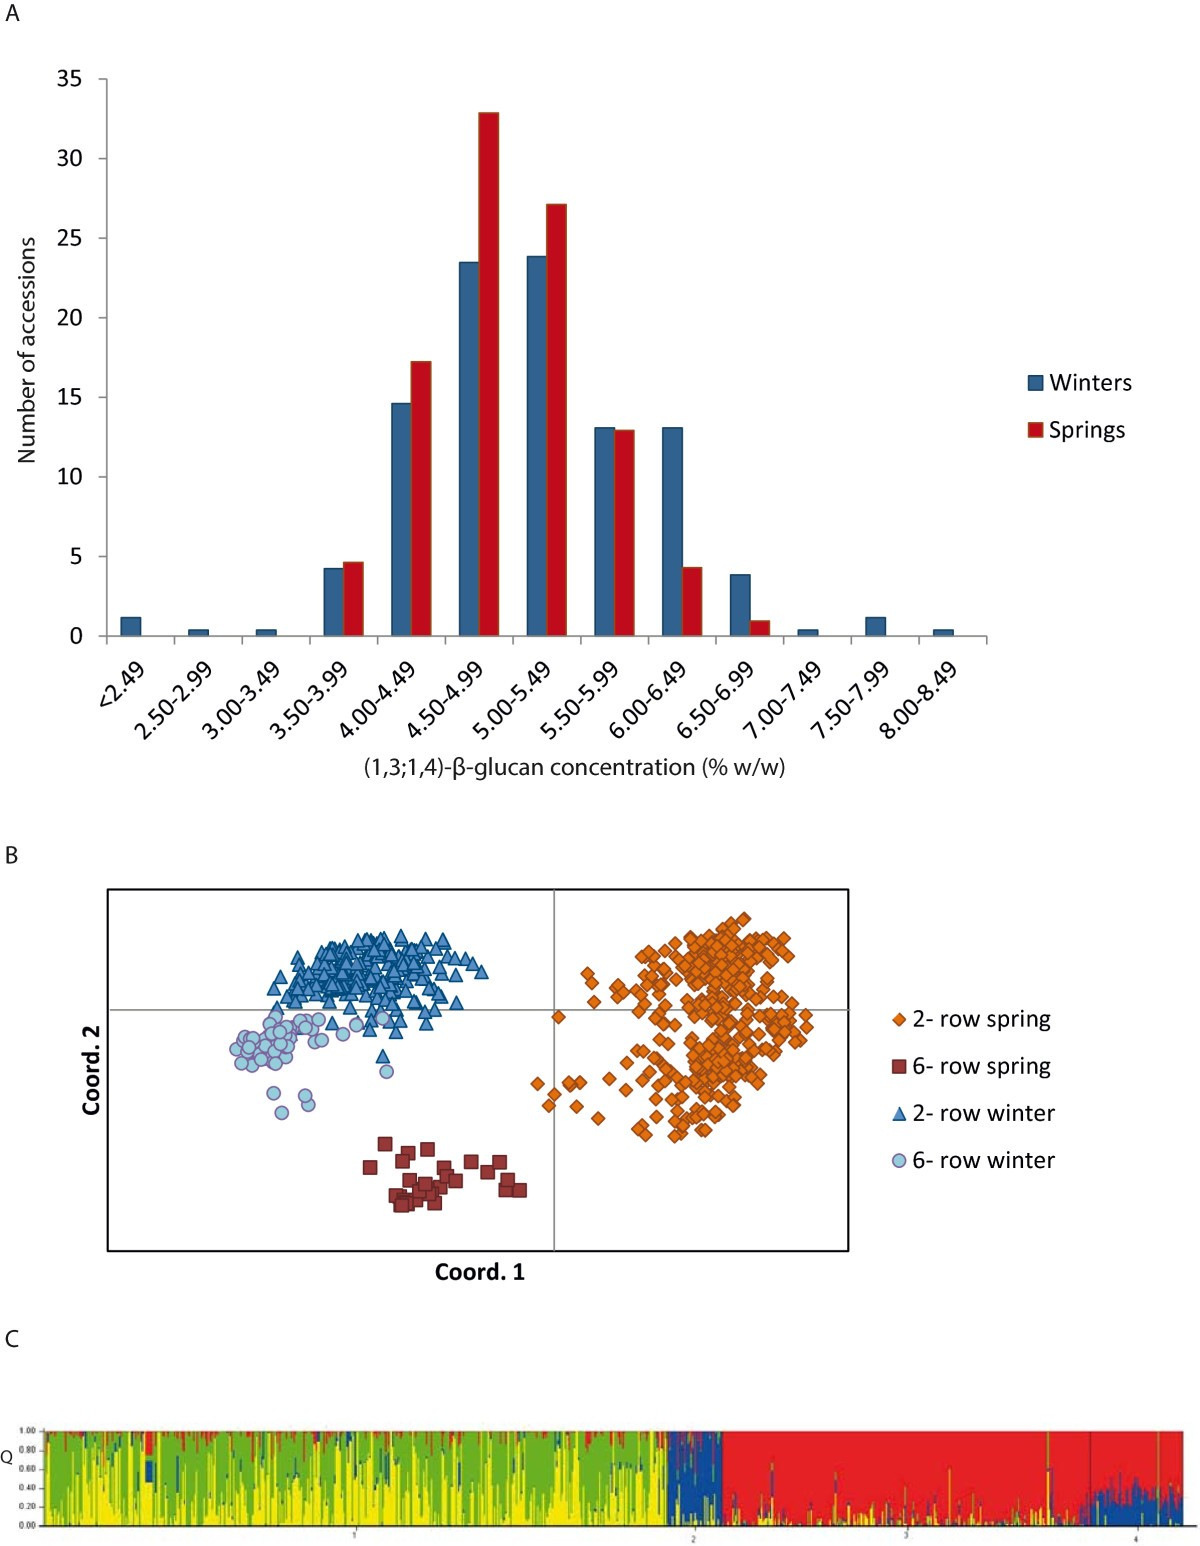 A Genome Wide Association Scan For 1314 Glucan Content In The Spring Buffer Type F 2 Figure 1